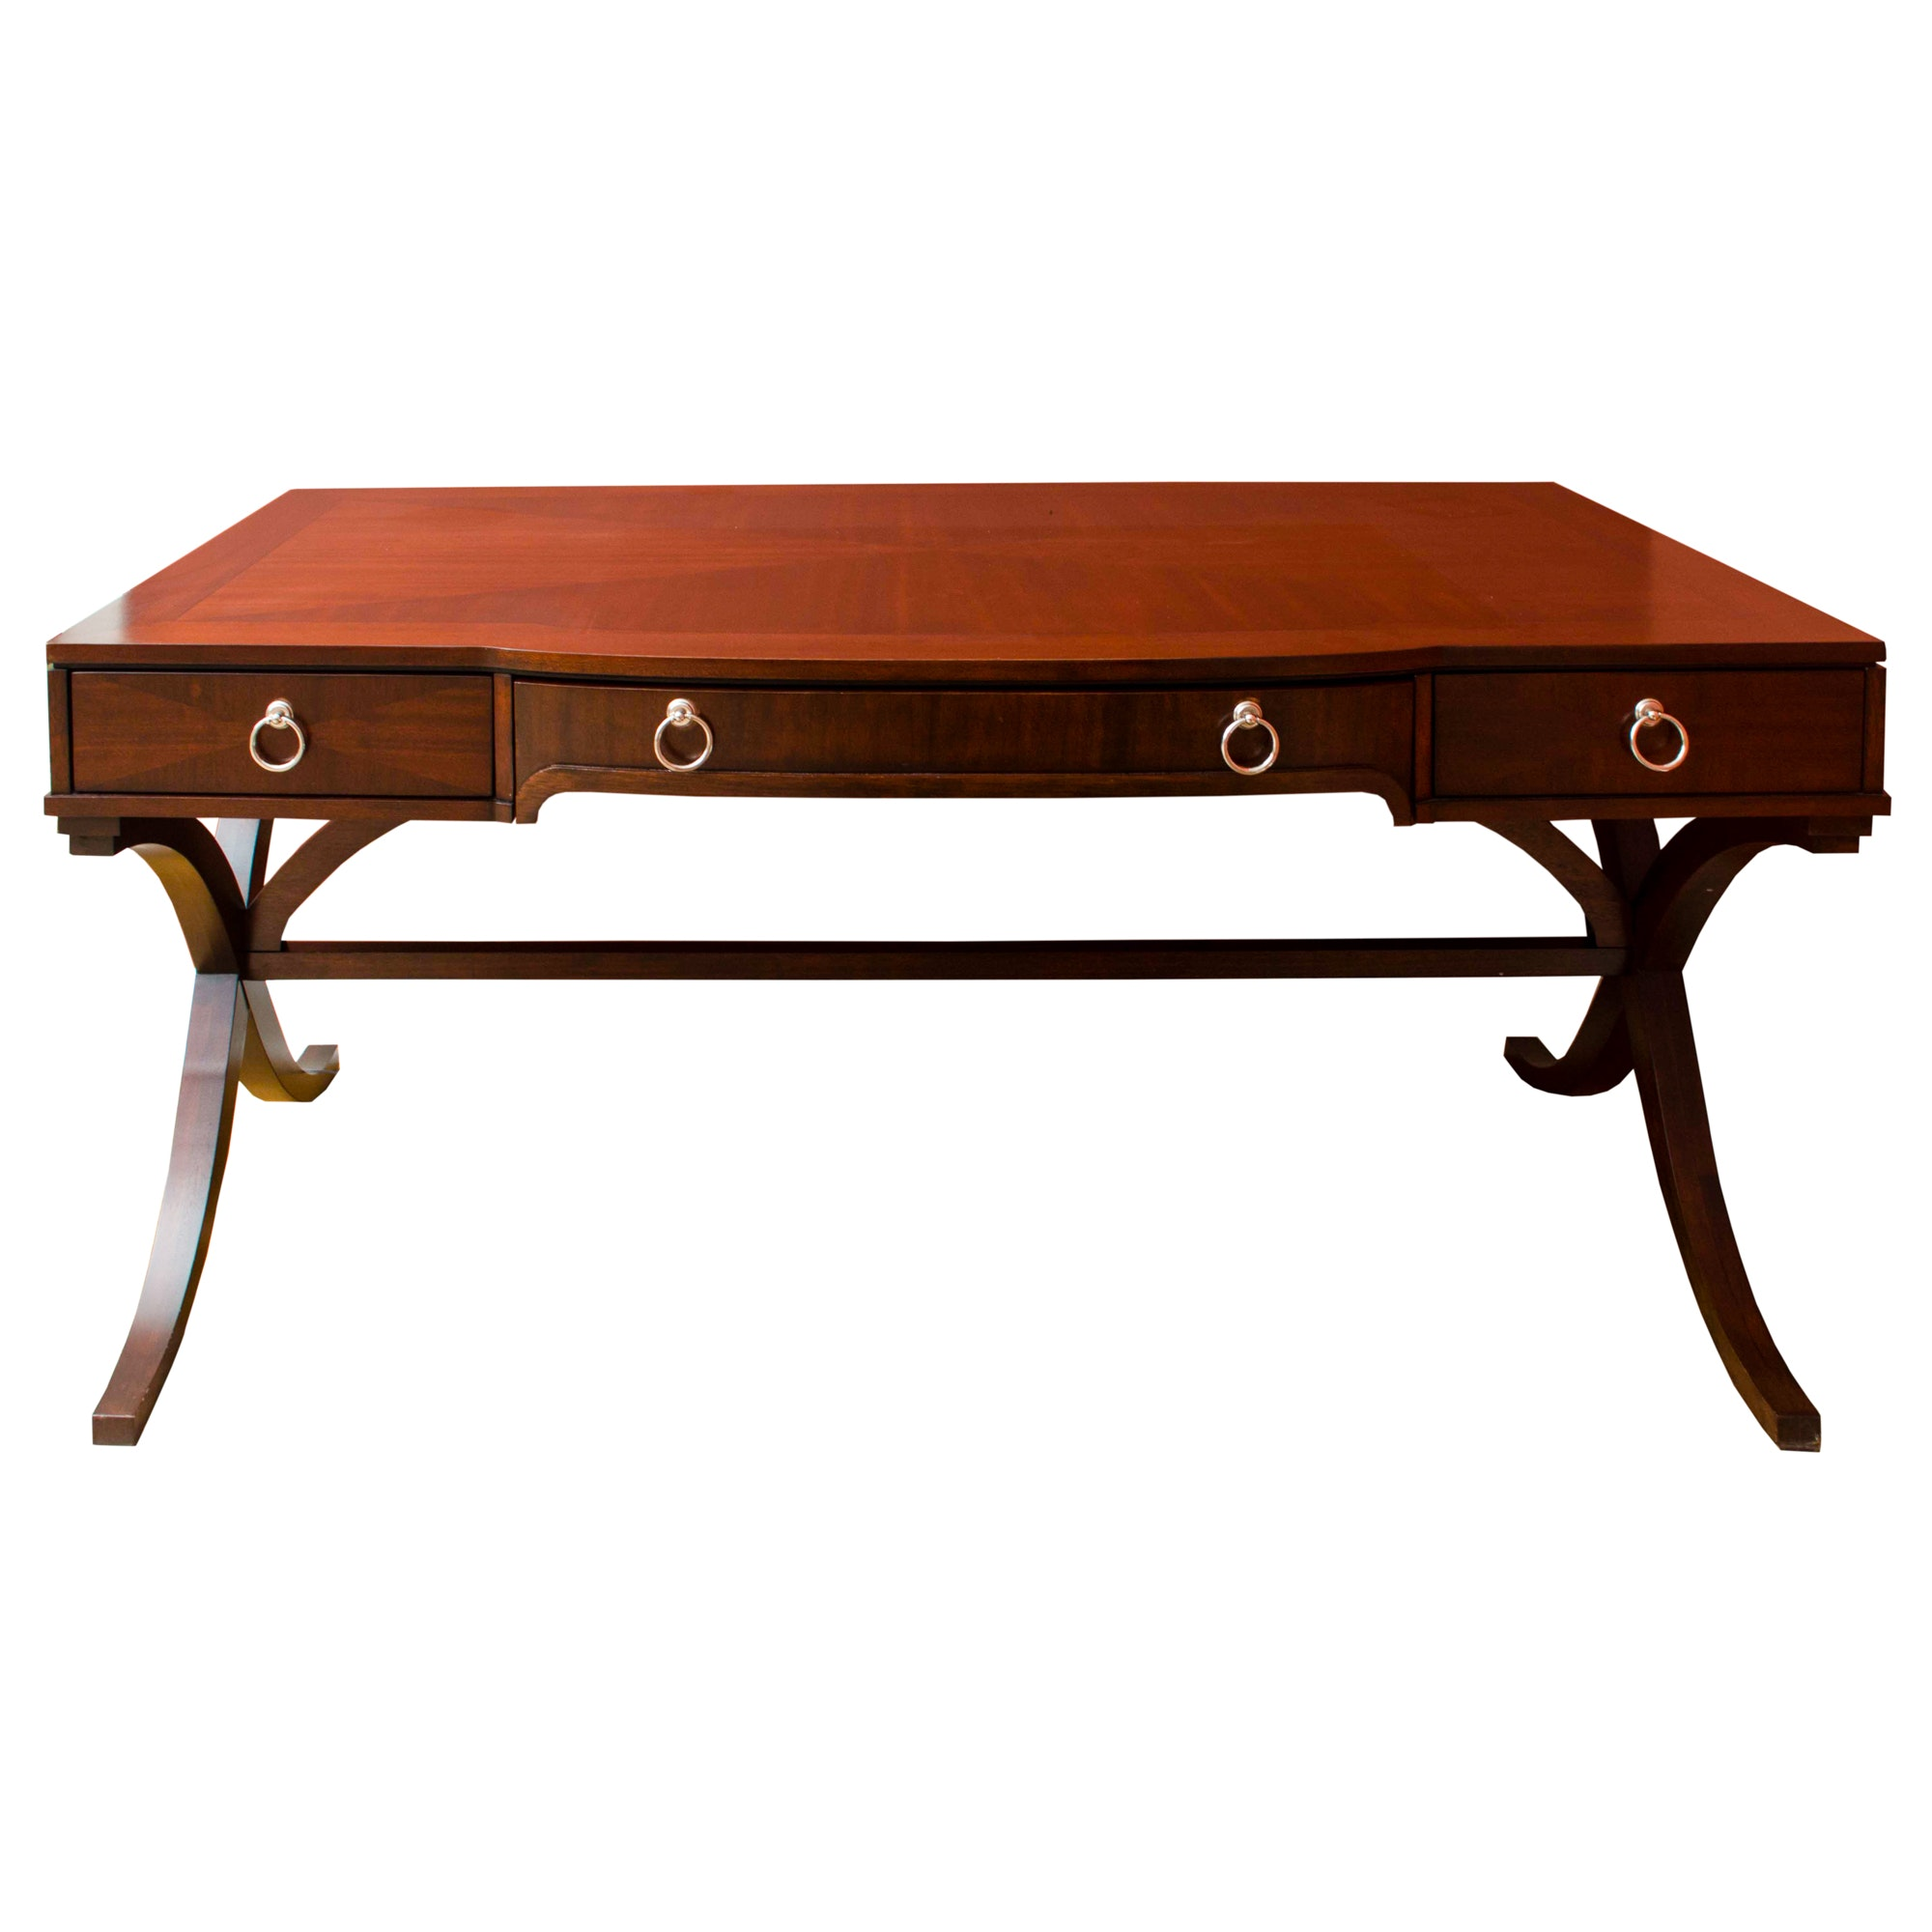 Campaign Style Mahogany Writing Desk by Hekman